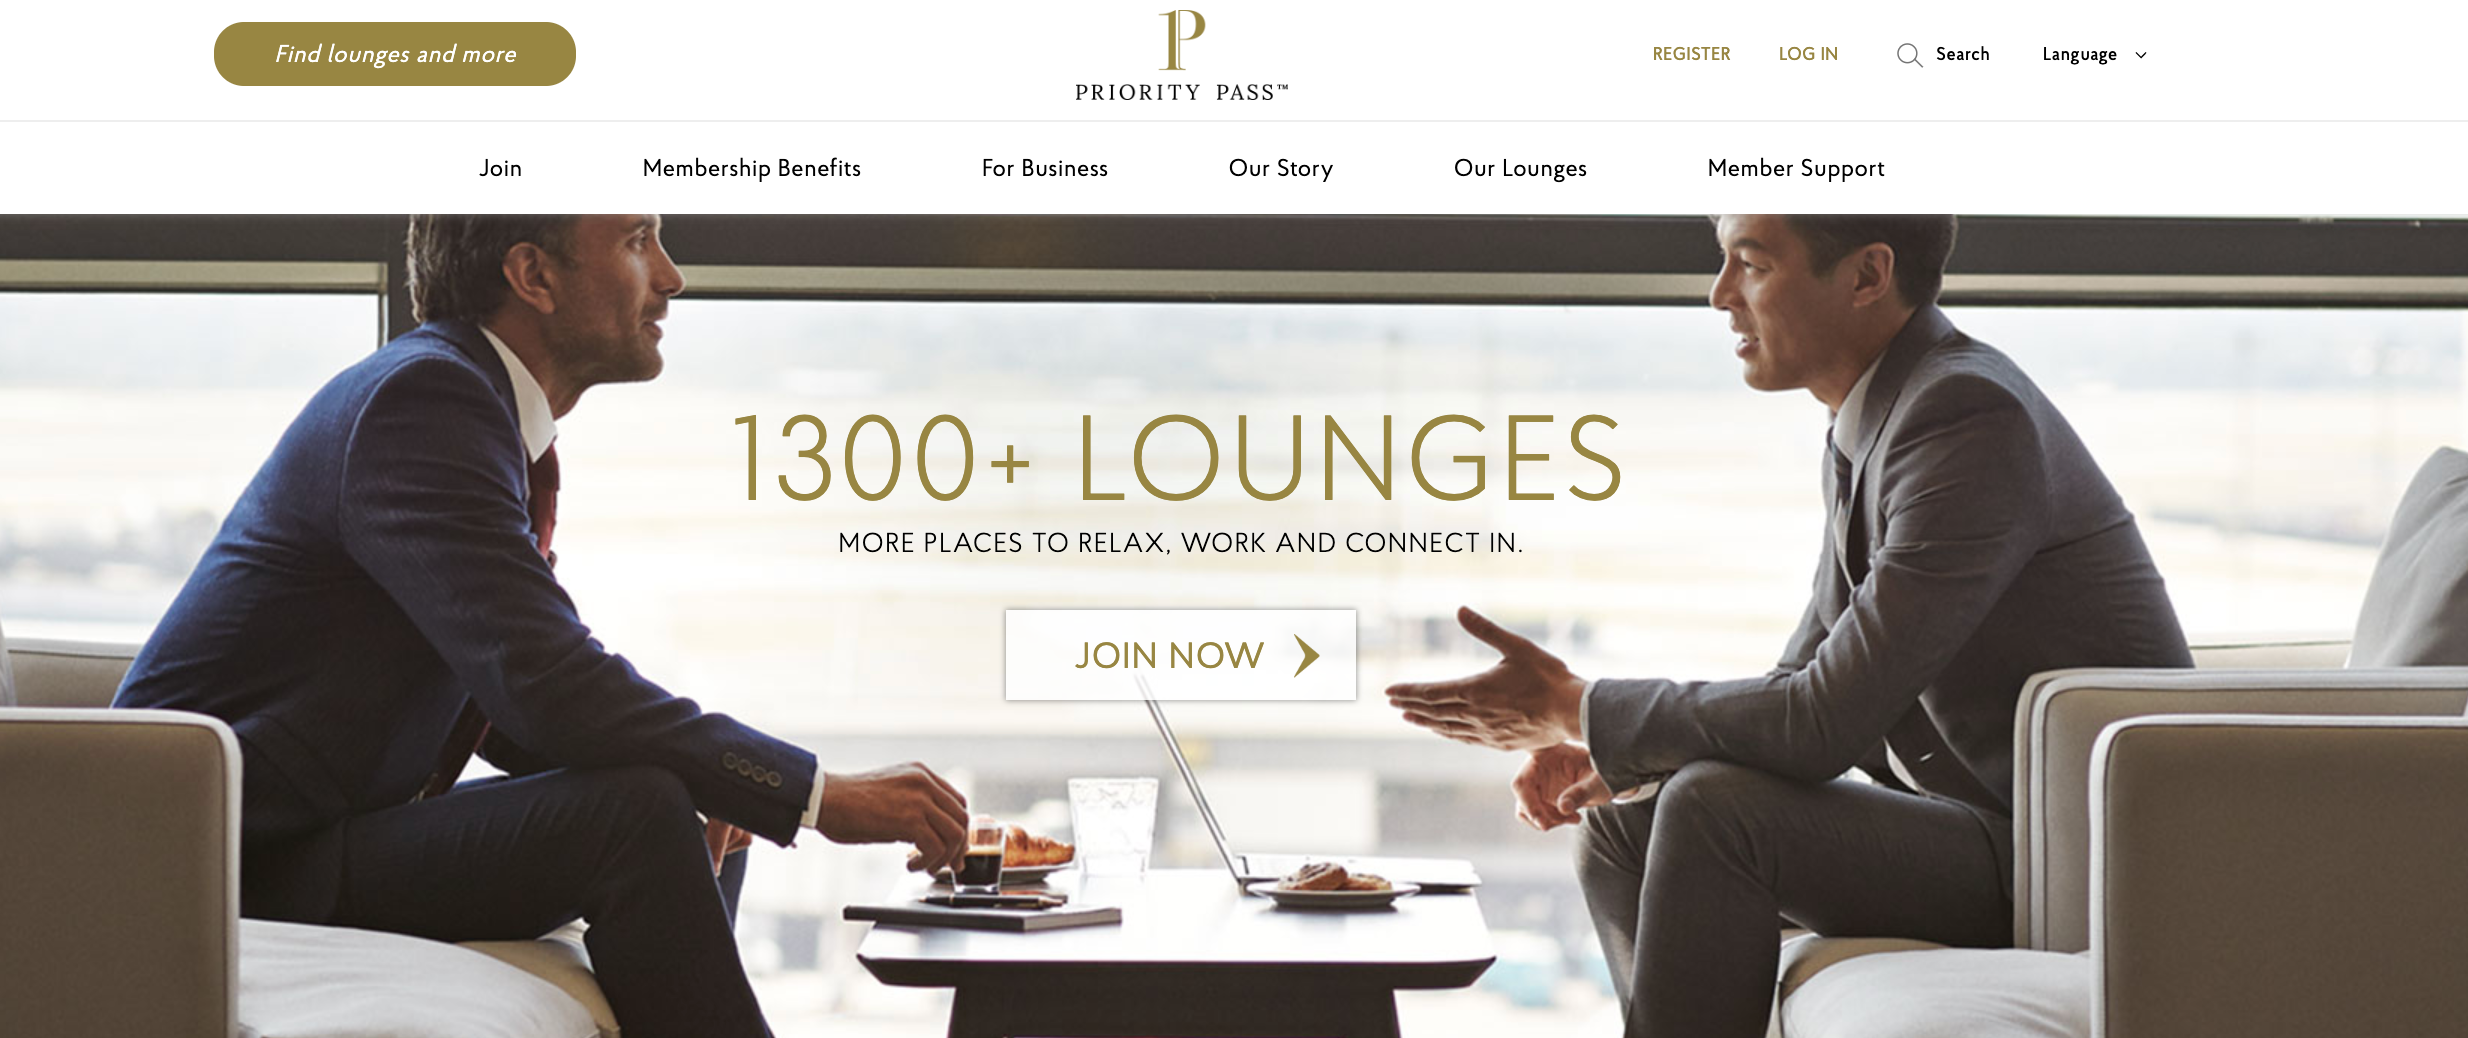 Priority Pass Review- Lounges Supported